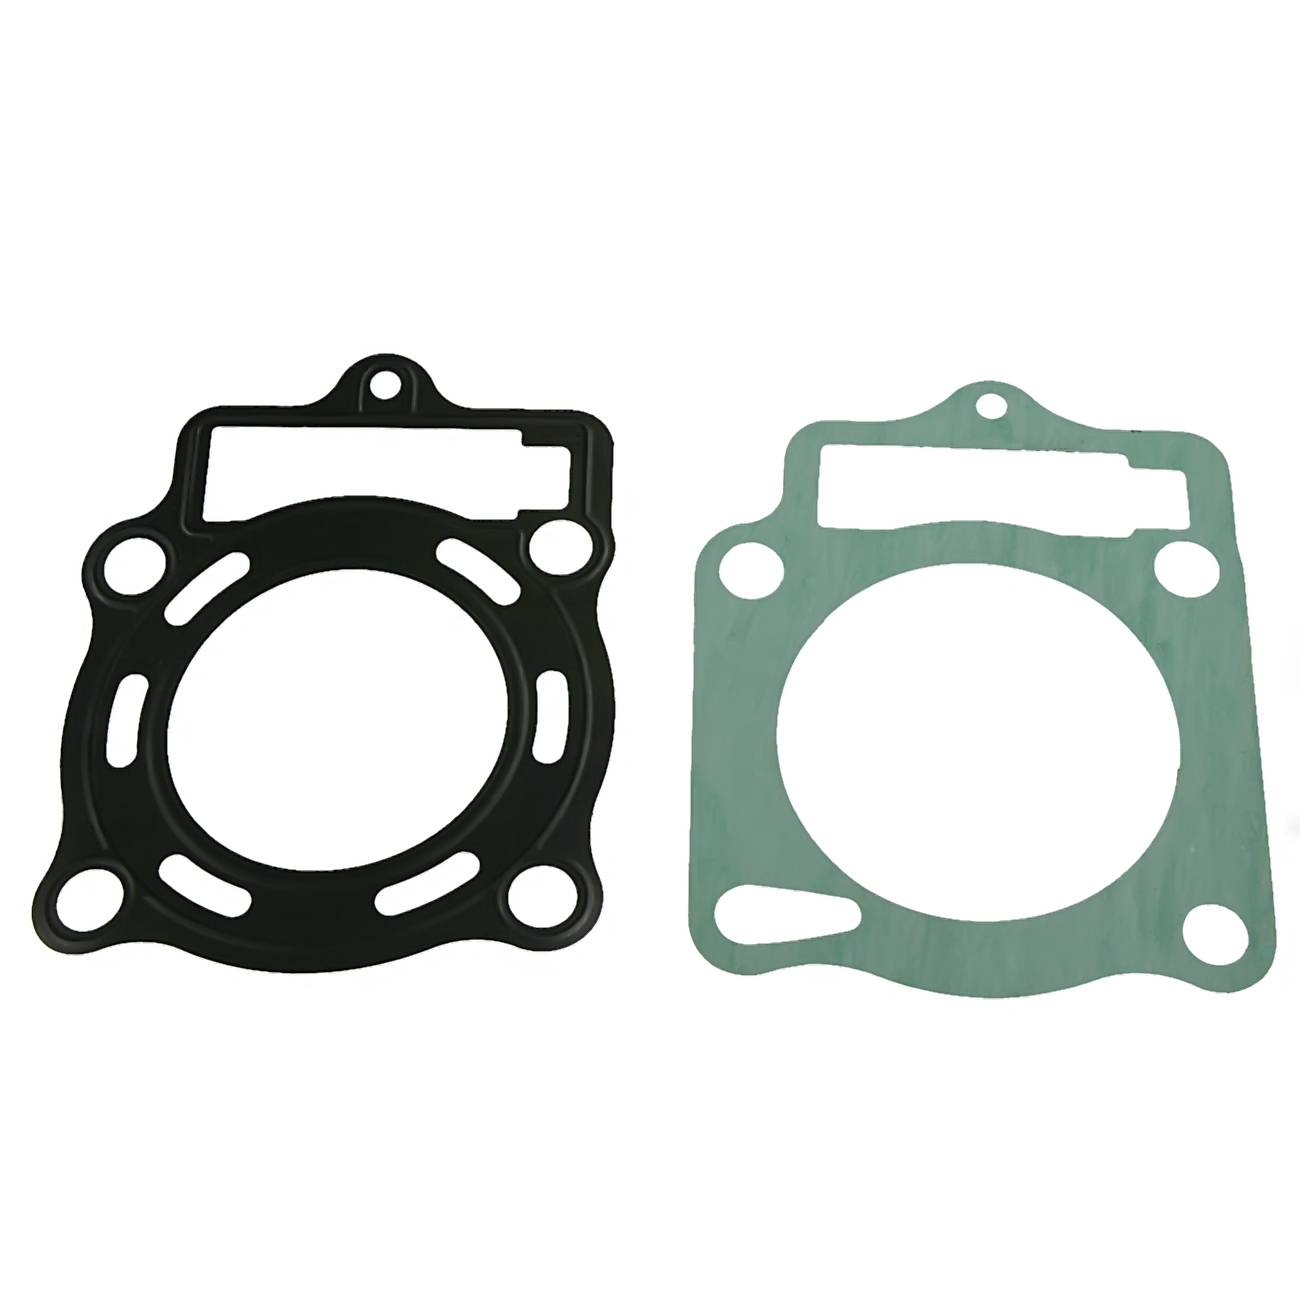 Water Cooled Engine Head Bottom Base Gasket Fit CB250W Dirt Bike ATV